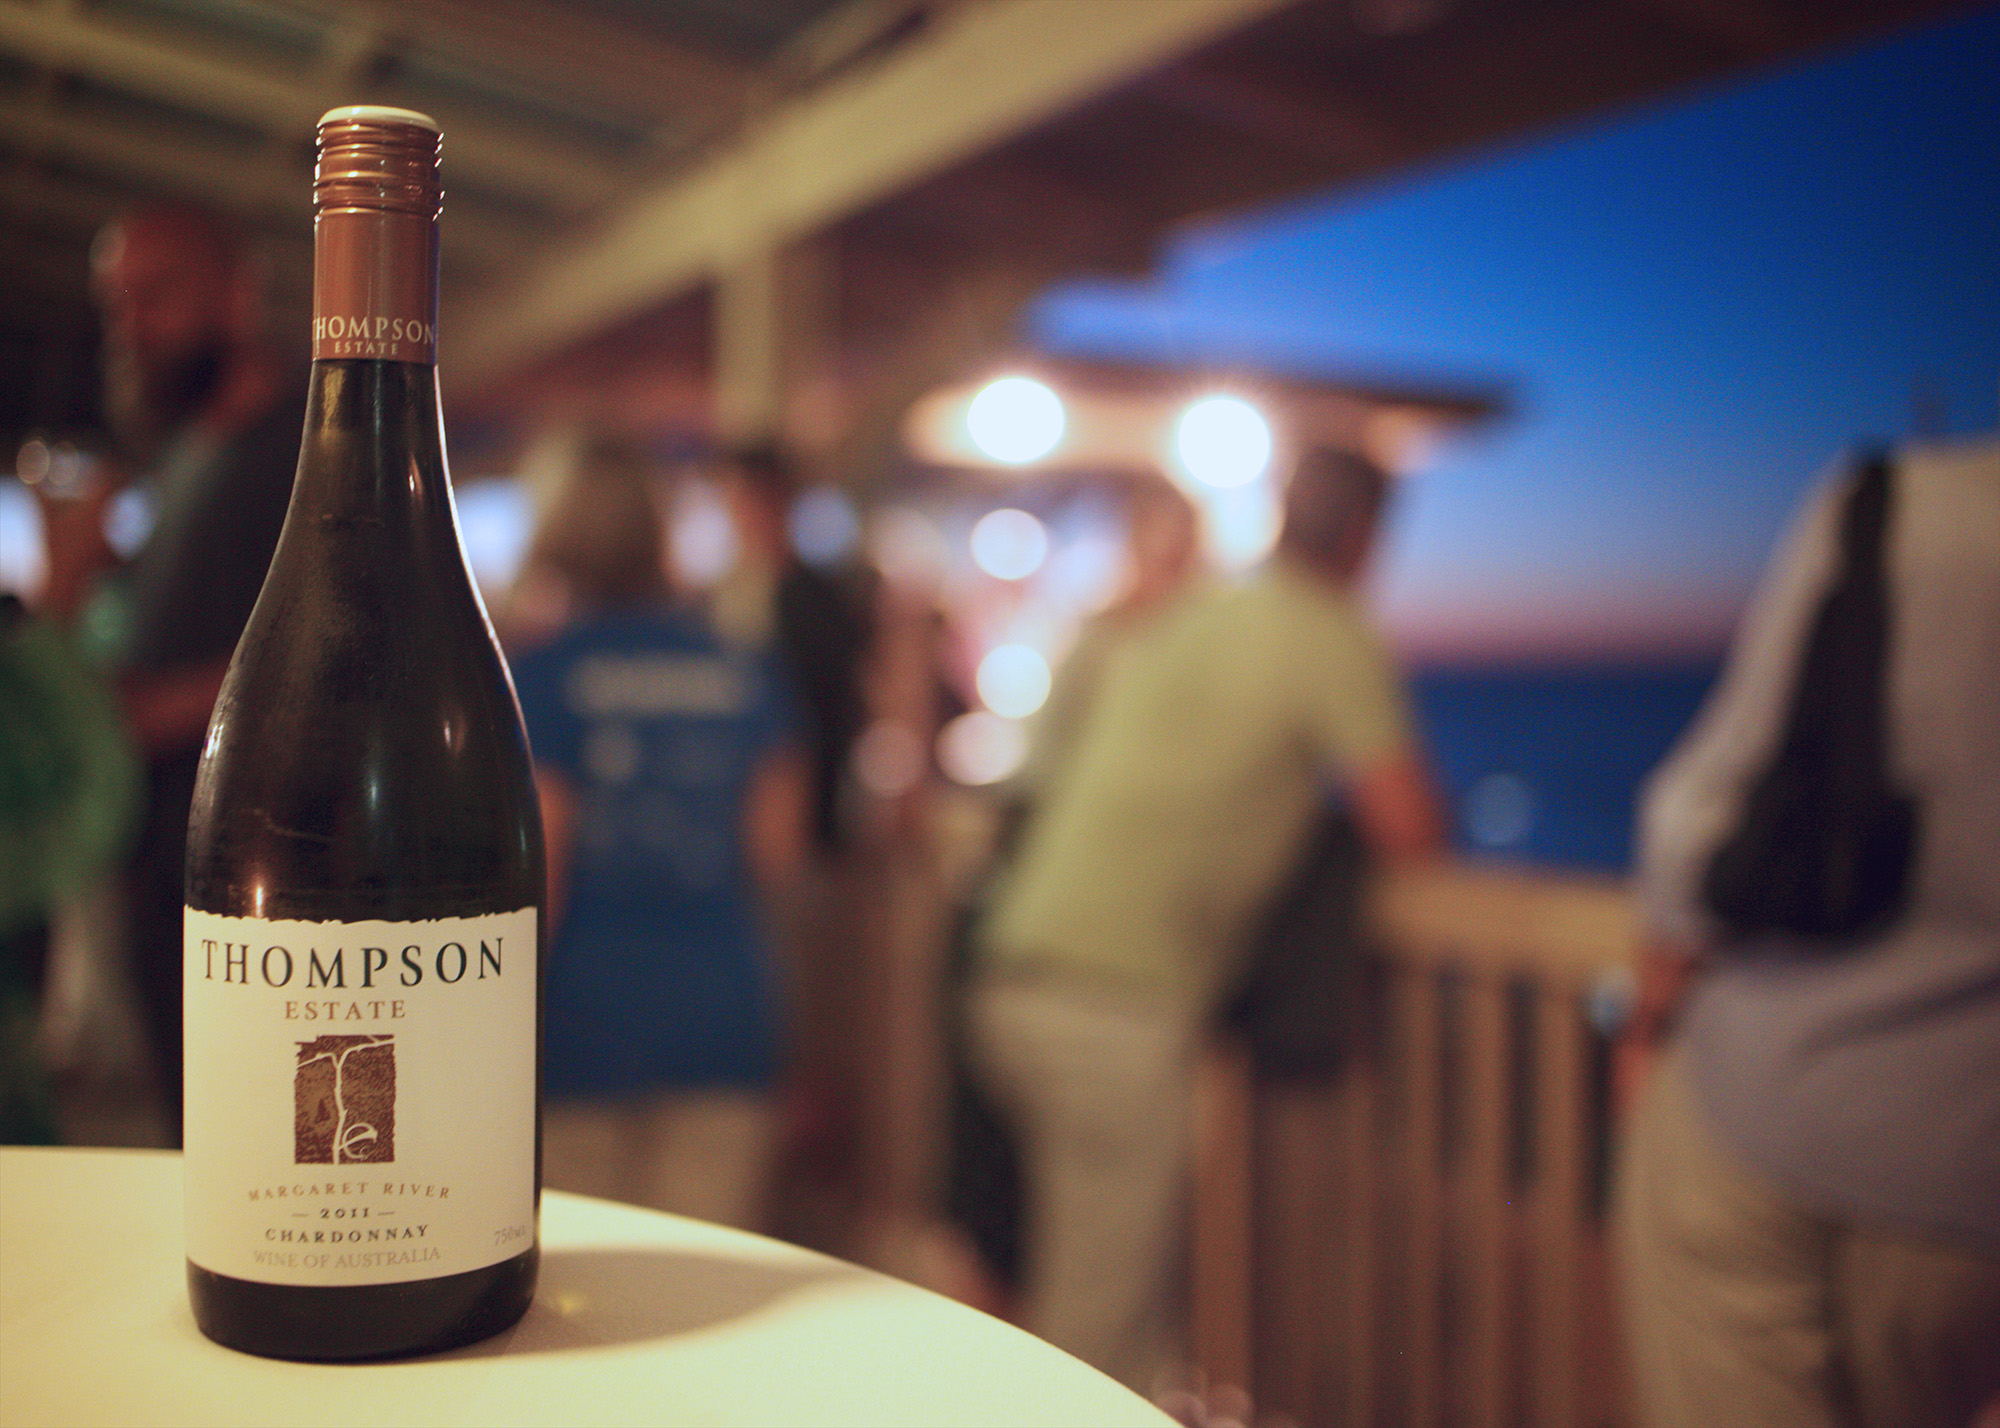 Thompson Estate Wine. Photo: Jarrad Seng